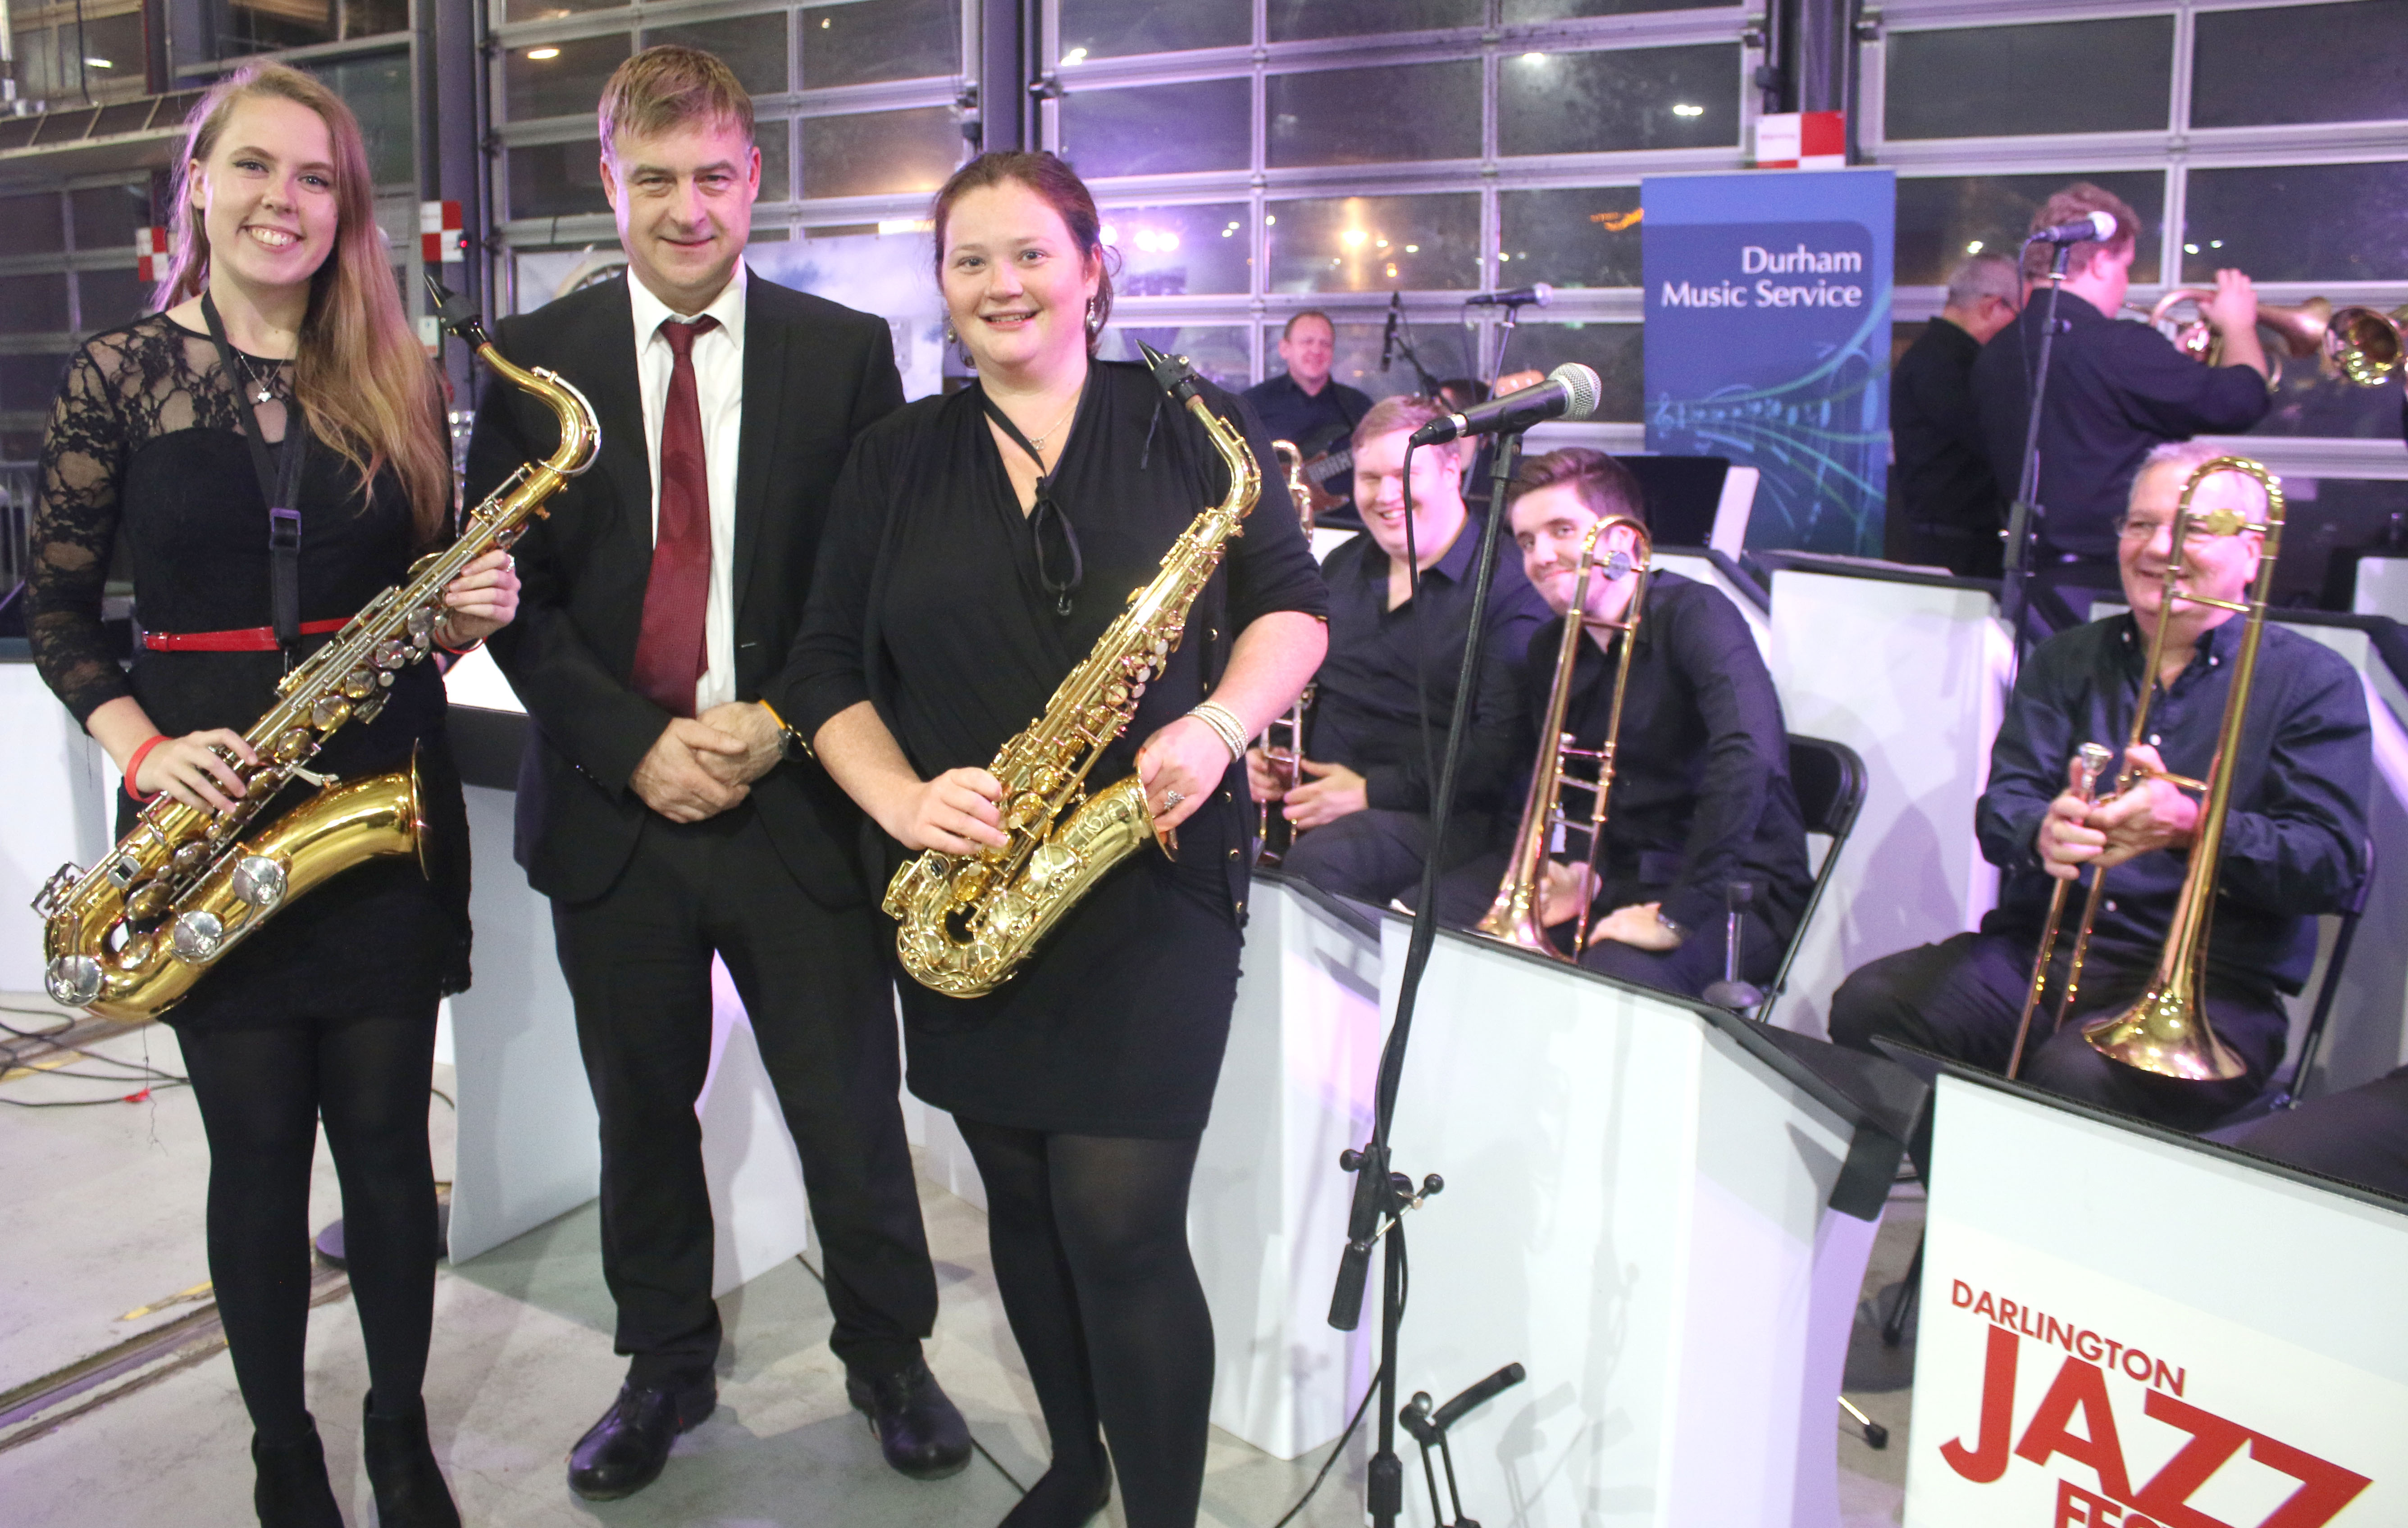 Aycliffe Musicians in Durham Music Service Band